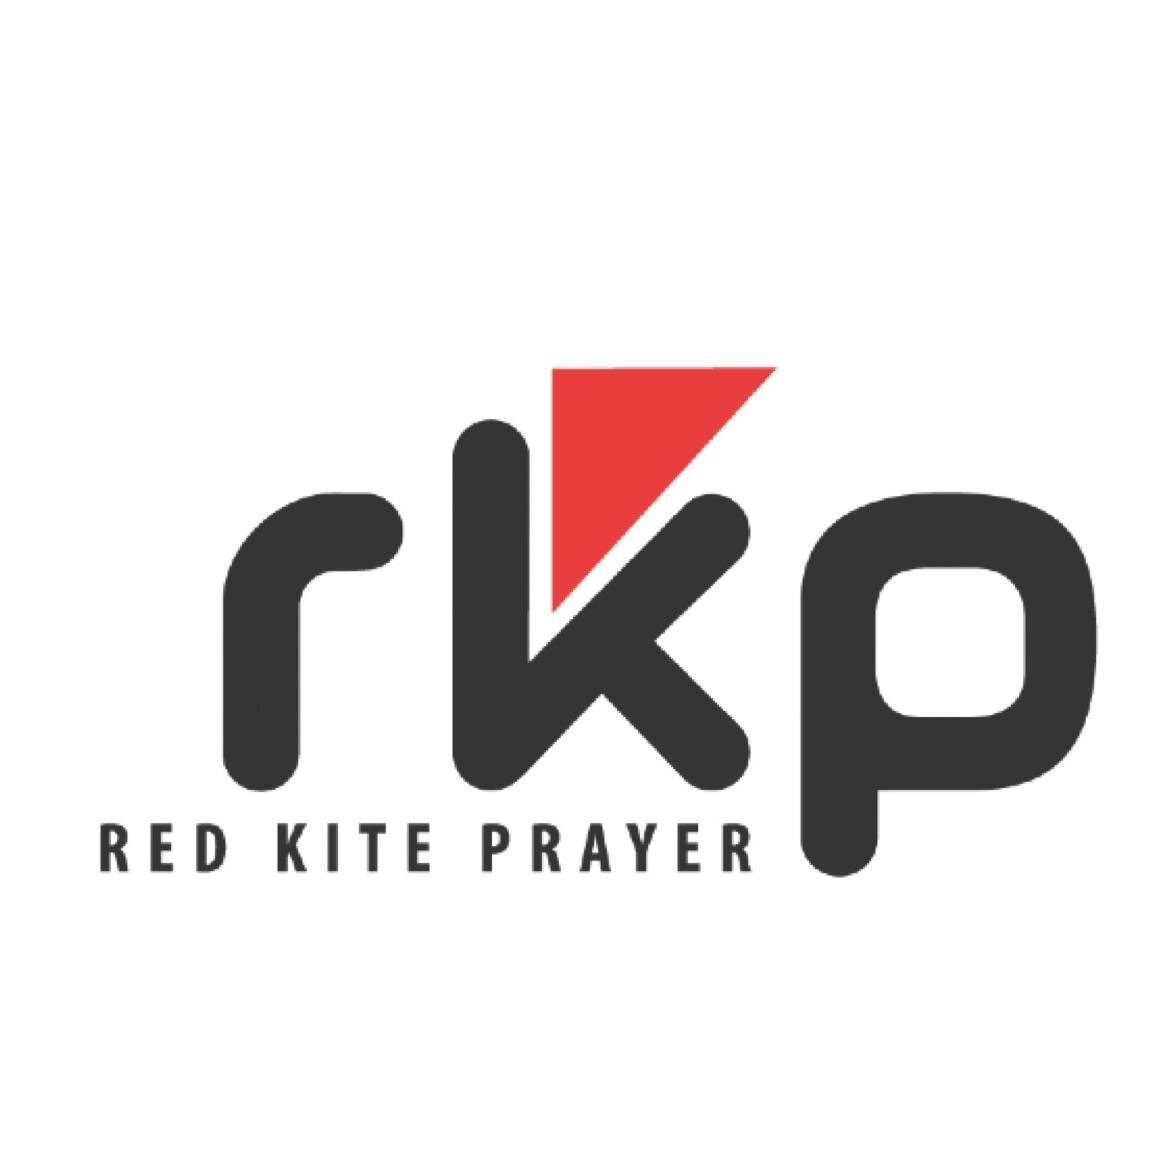 Red Kite Prayer